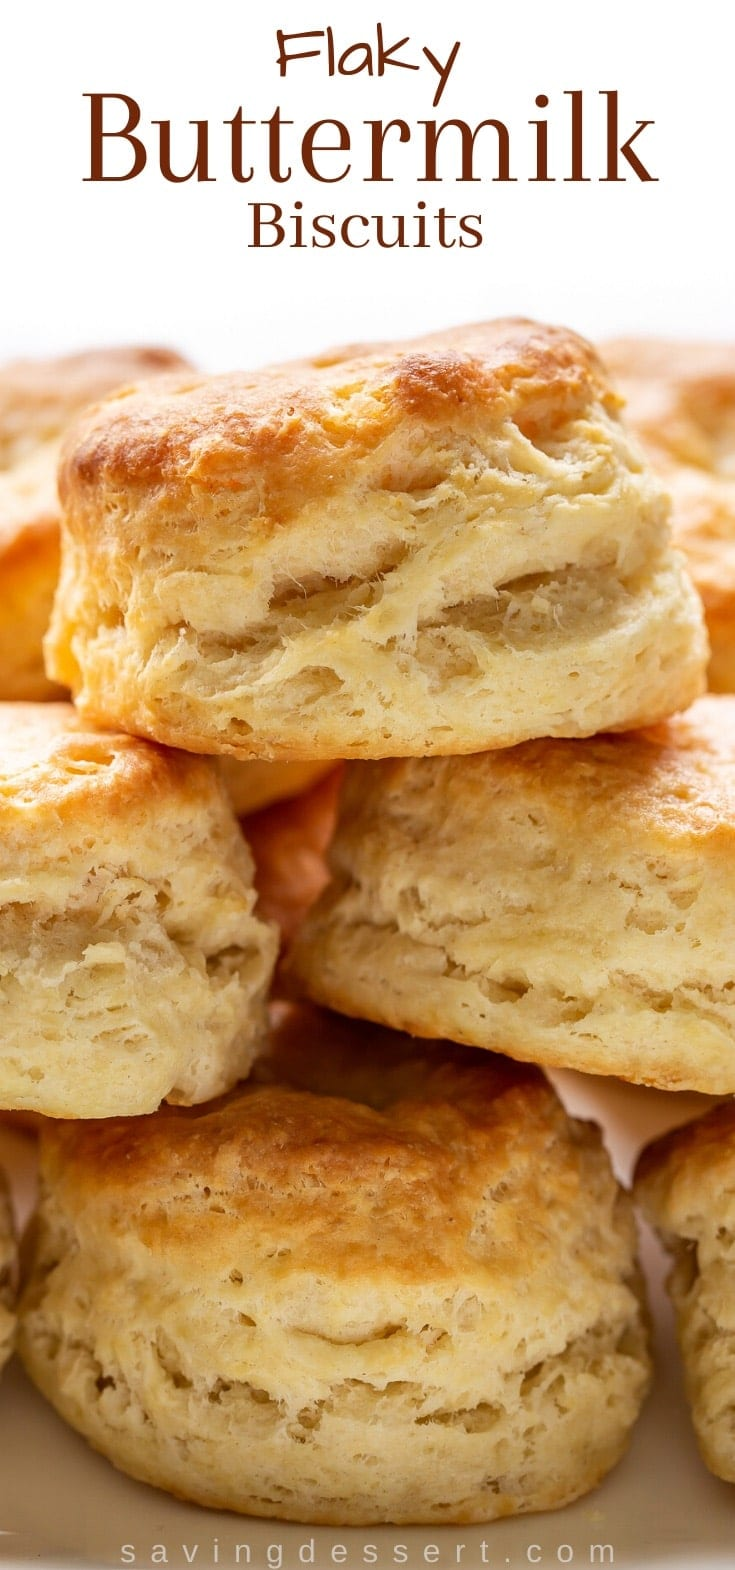 Buttermilk Biscuits Recipe Recipe In 2020 Biscuit Recipe Buttermilk Biscuits Recipe Homemade Buttermilk